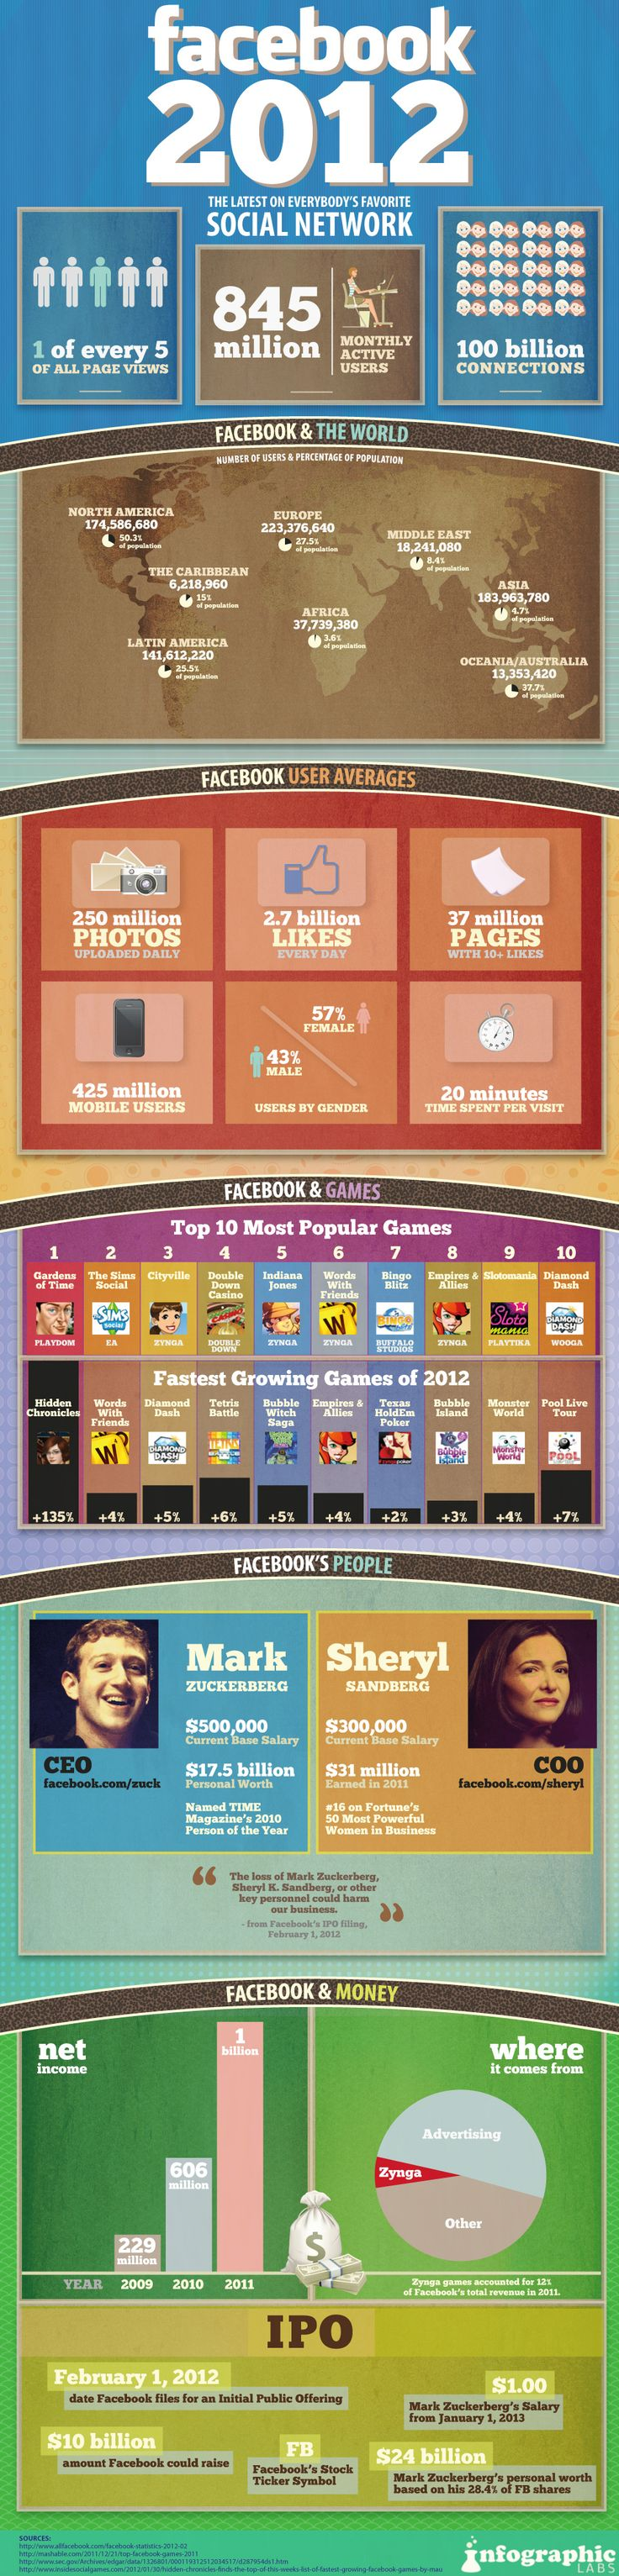 Facebook 2012 | Infographic